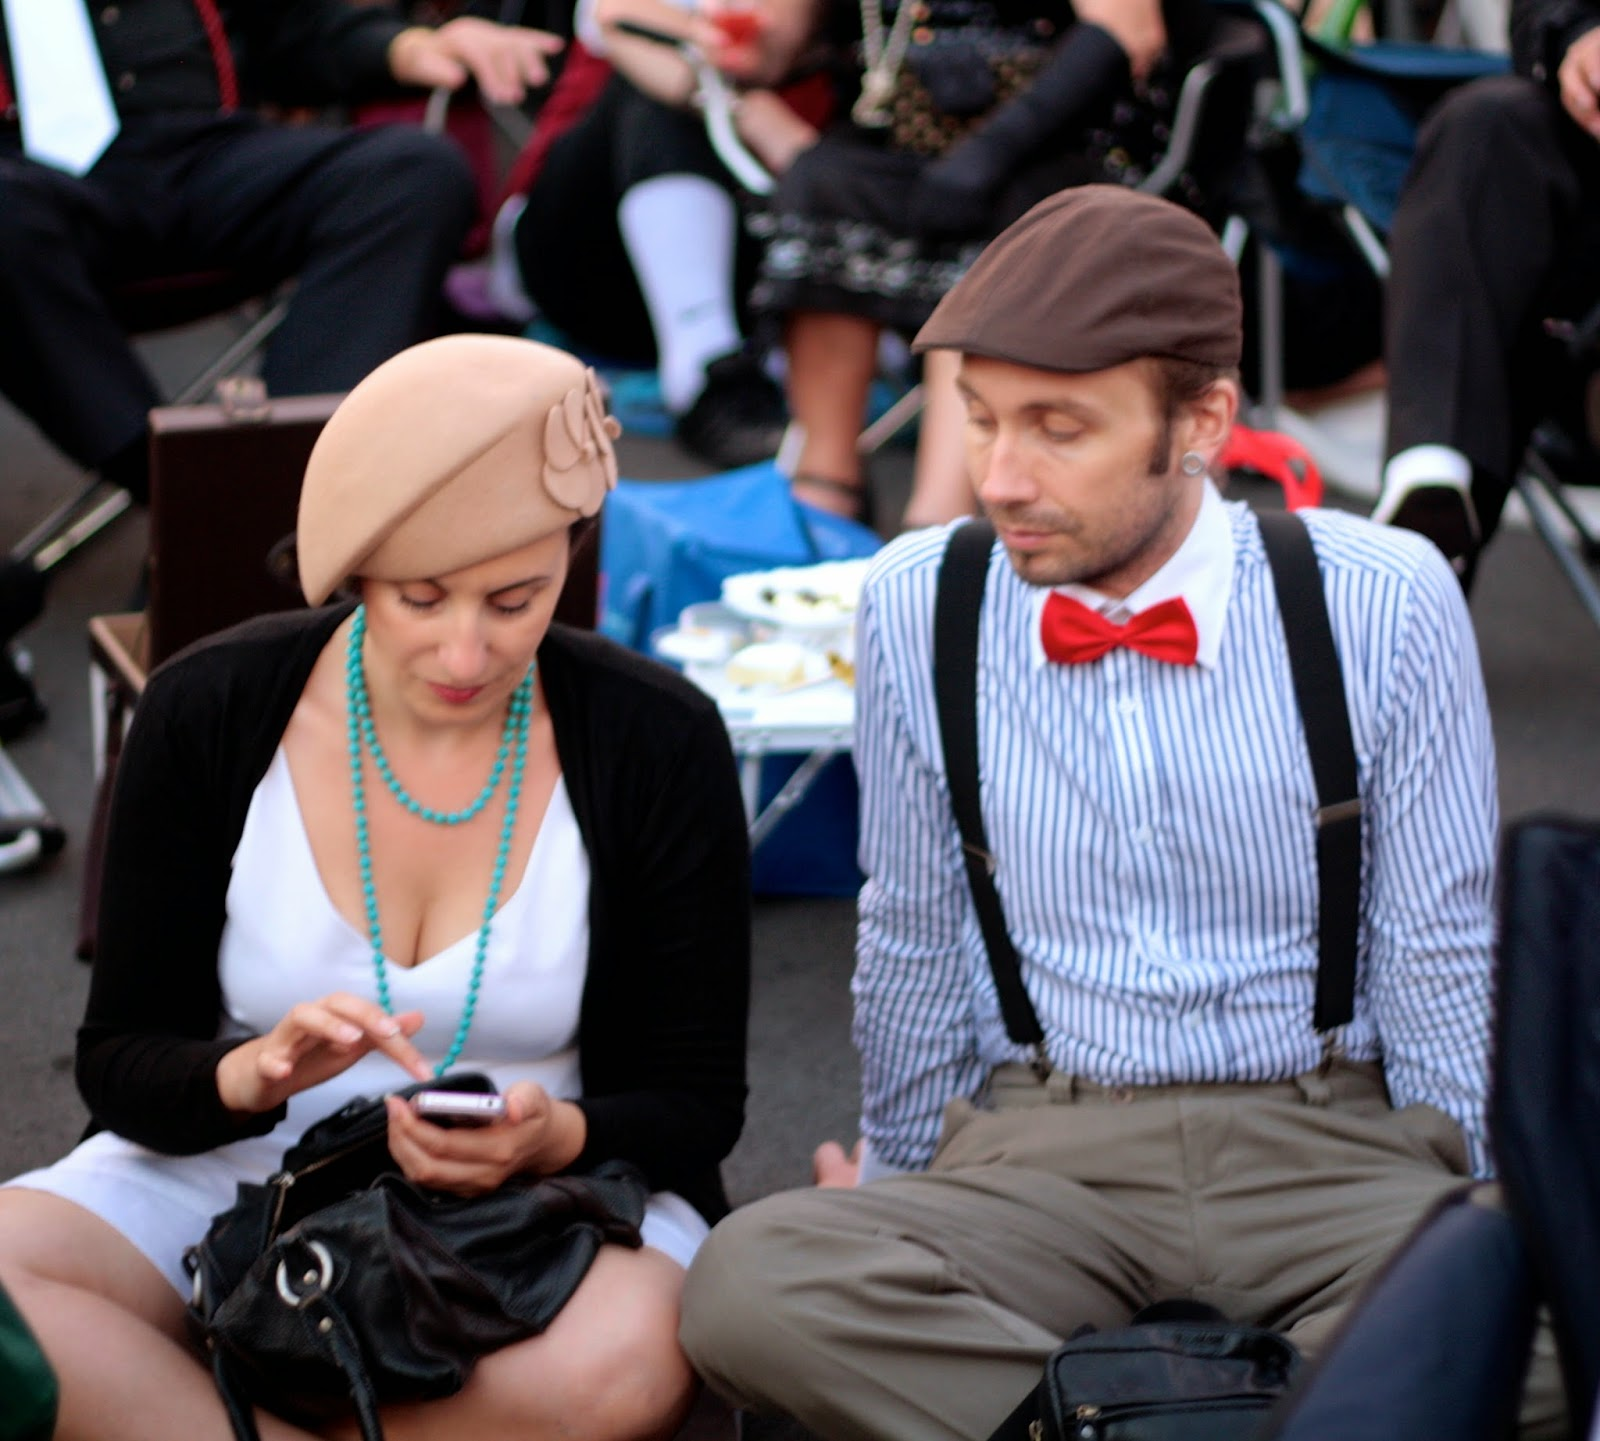 An art deco couple sends a text on an iPhone.